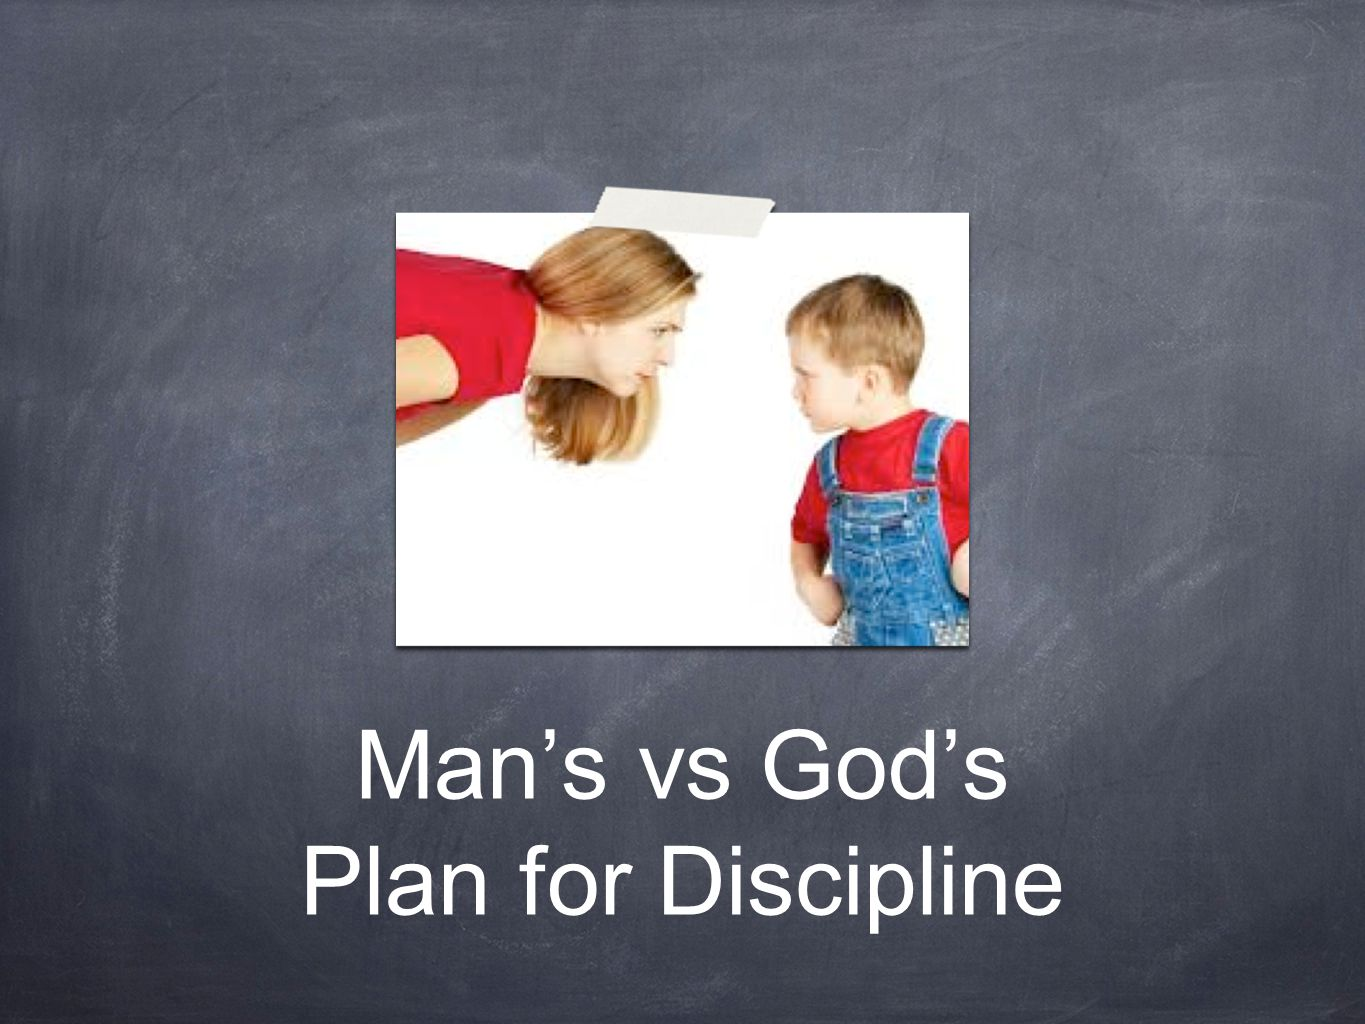 Tips To Raise Godly Children Love them with All Your Heart (Tit 2:4) Teach them the Bible (Psa 78:5-7; cf Eph 6:4; 2 Tim.